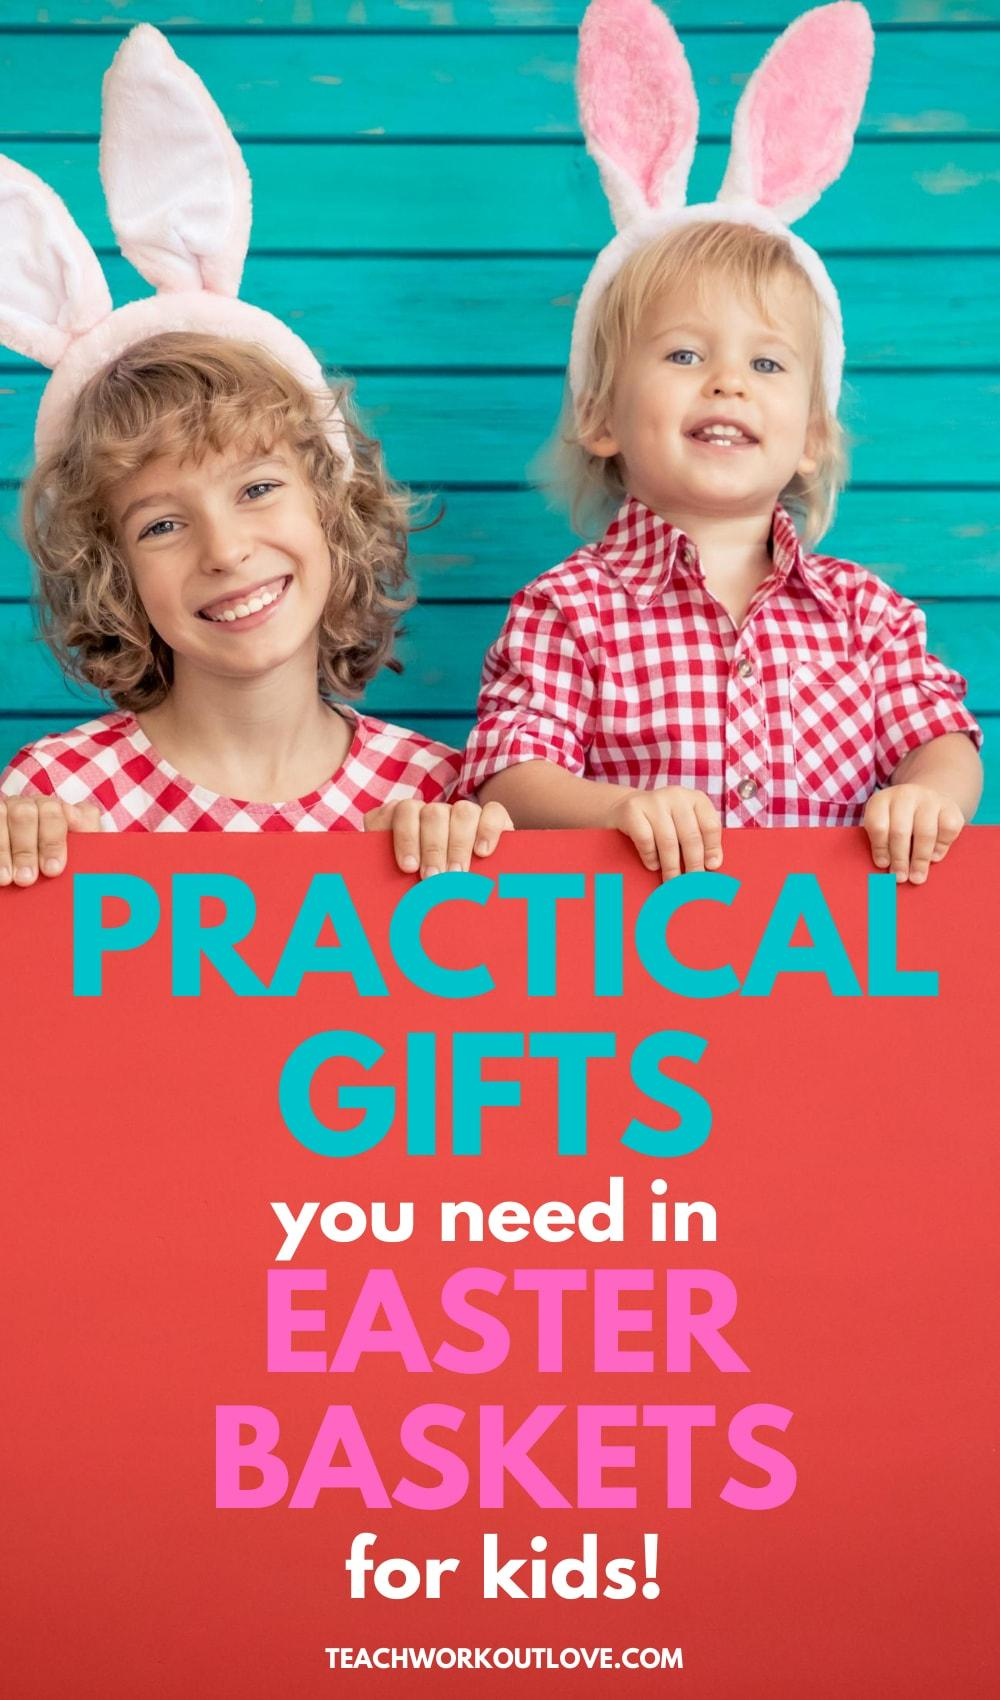 7 Practical Gifts You Need in Easter Baskets for Kids